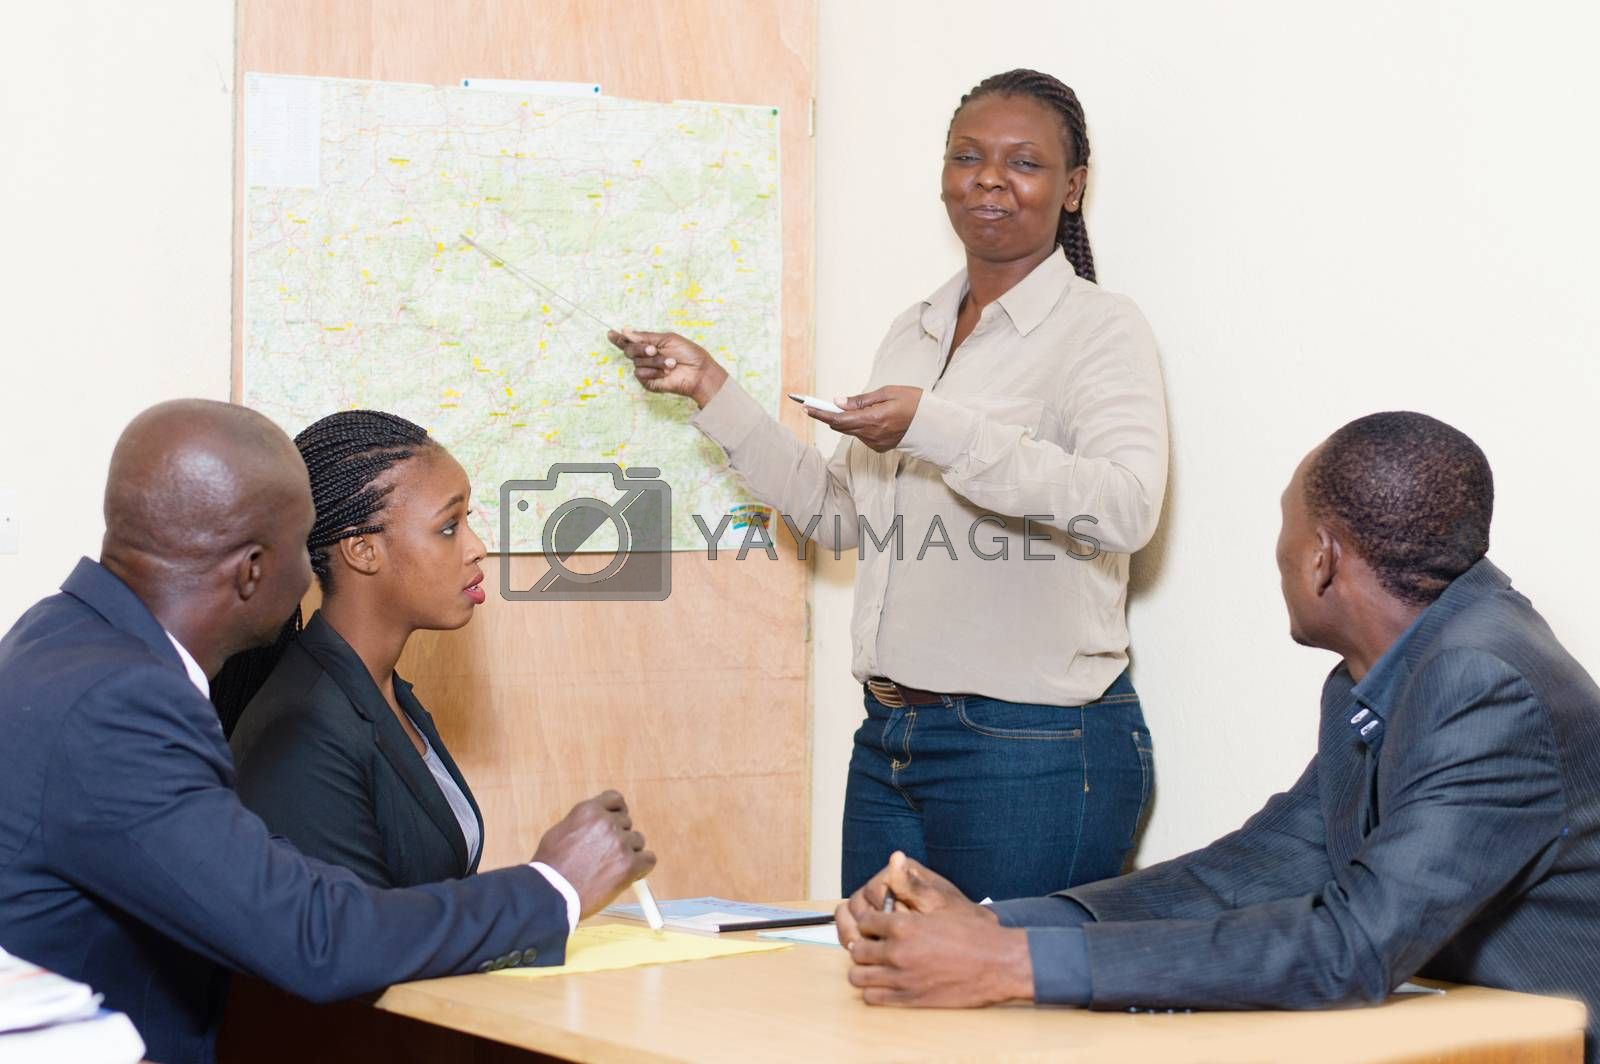 Businesswoman makes a presentation at the office at a meeting at by vystek